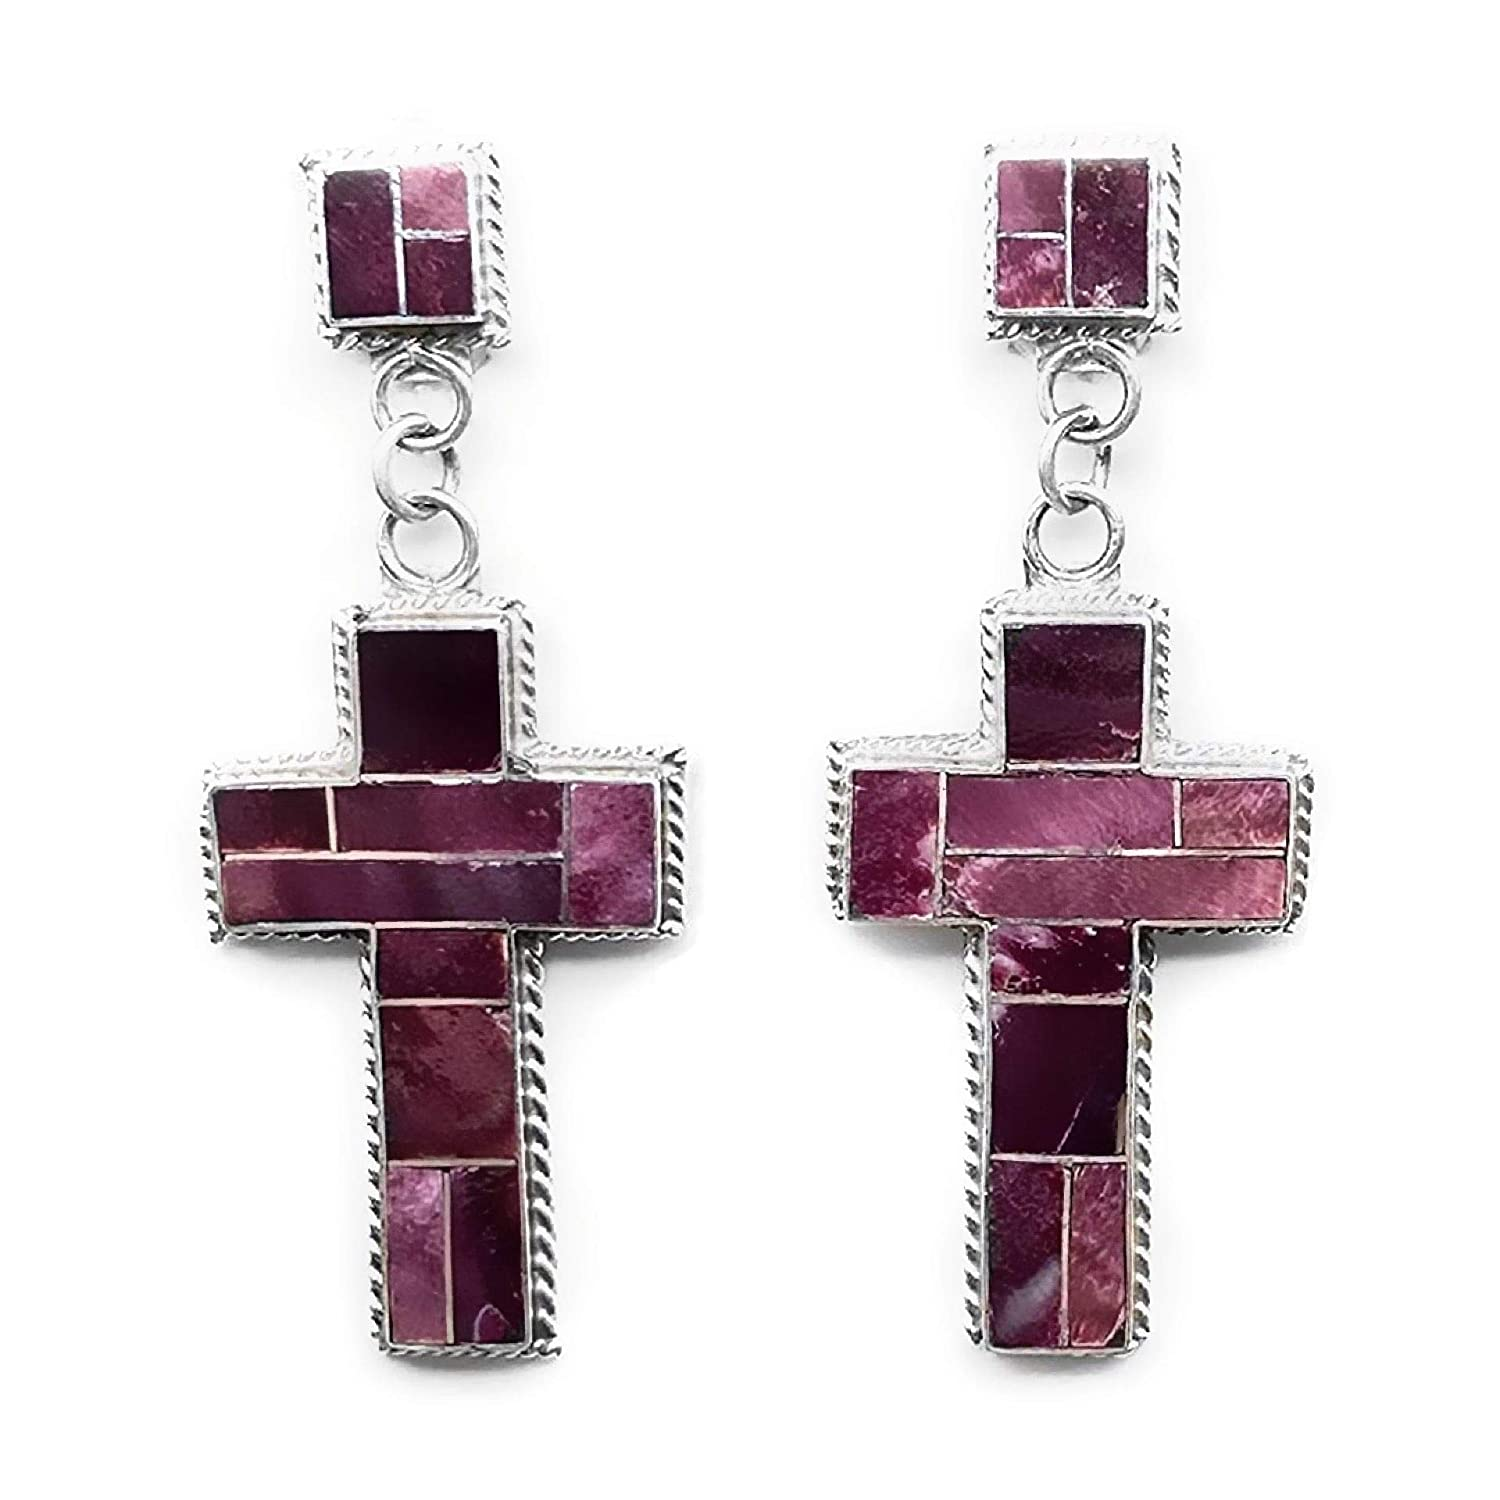 Purple Spiny Oyster Shell Cross Statement Earrings, Sterling Silver, Native American USA Handmade, Nickle Free